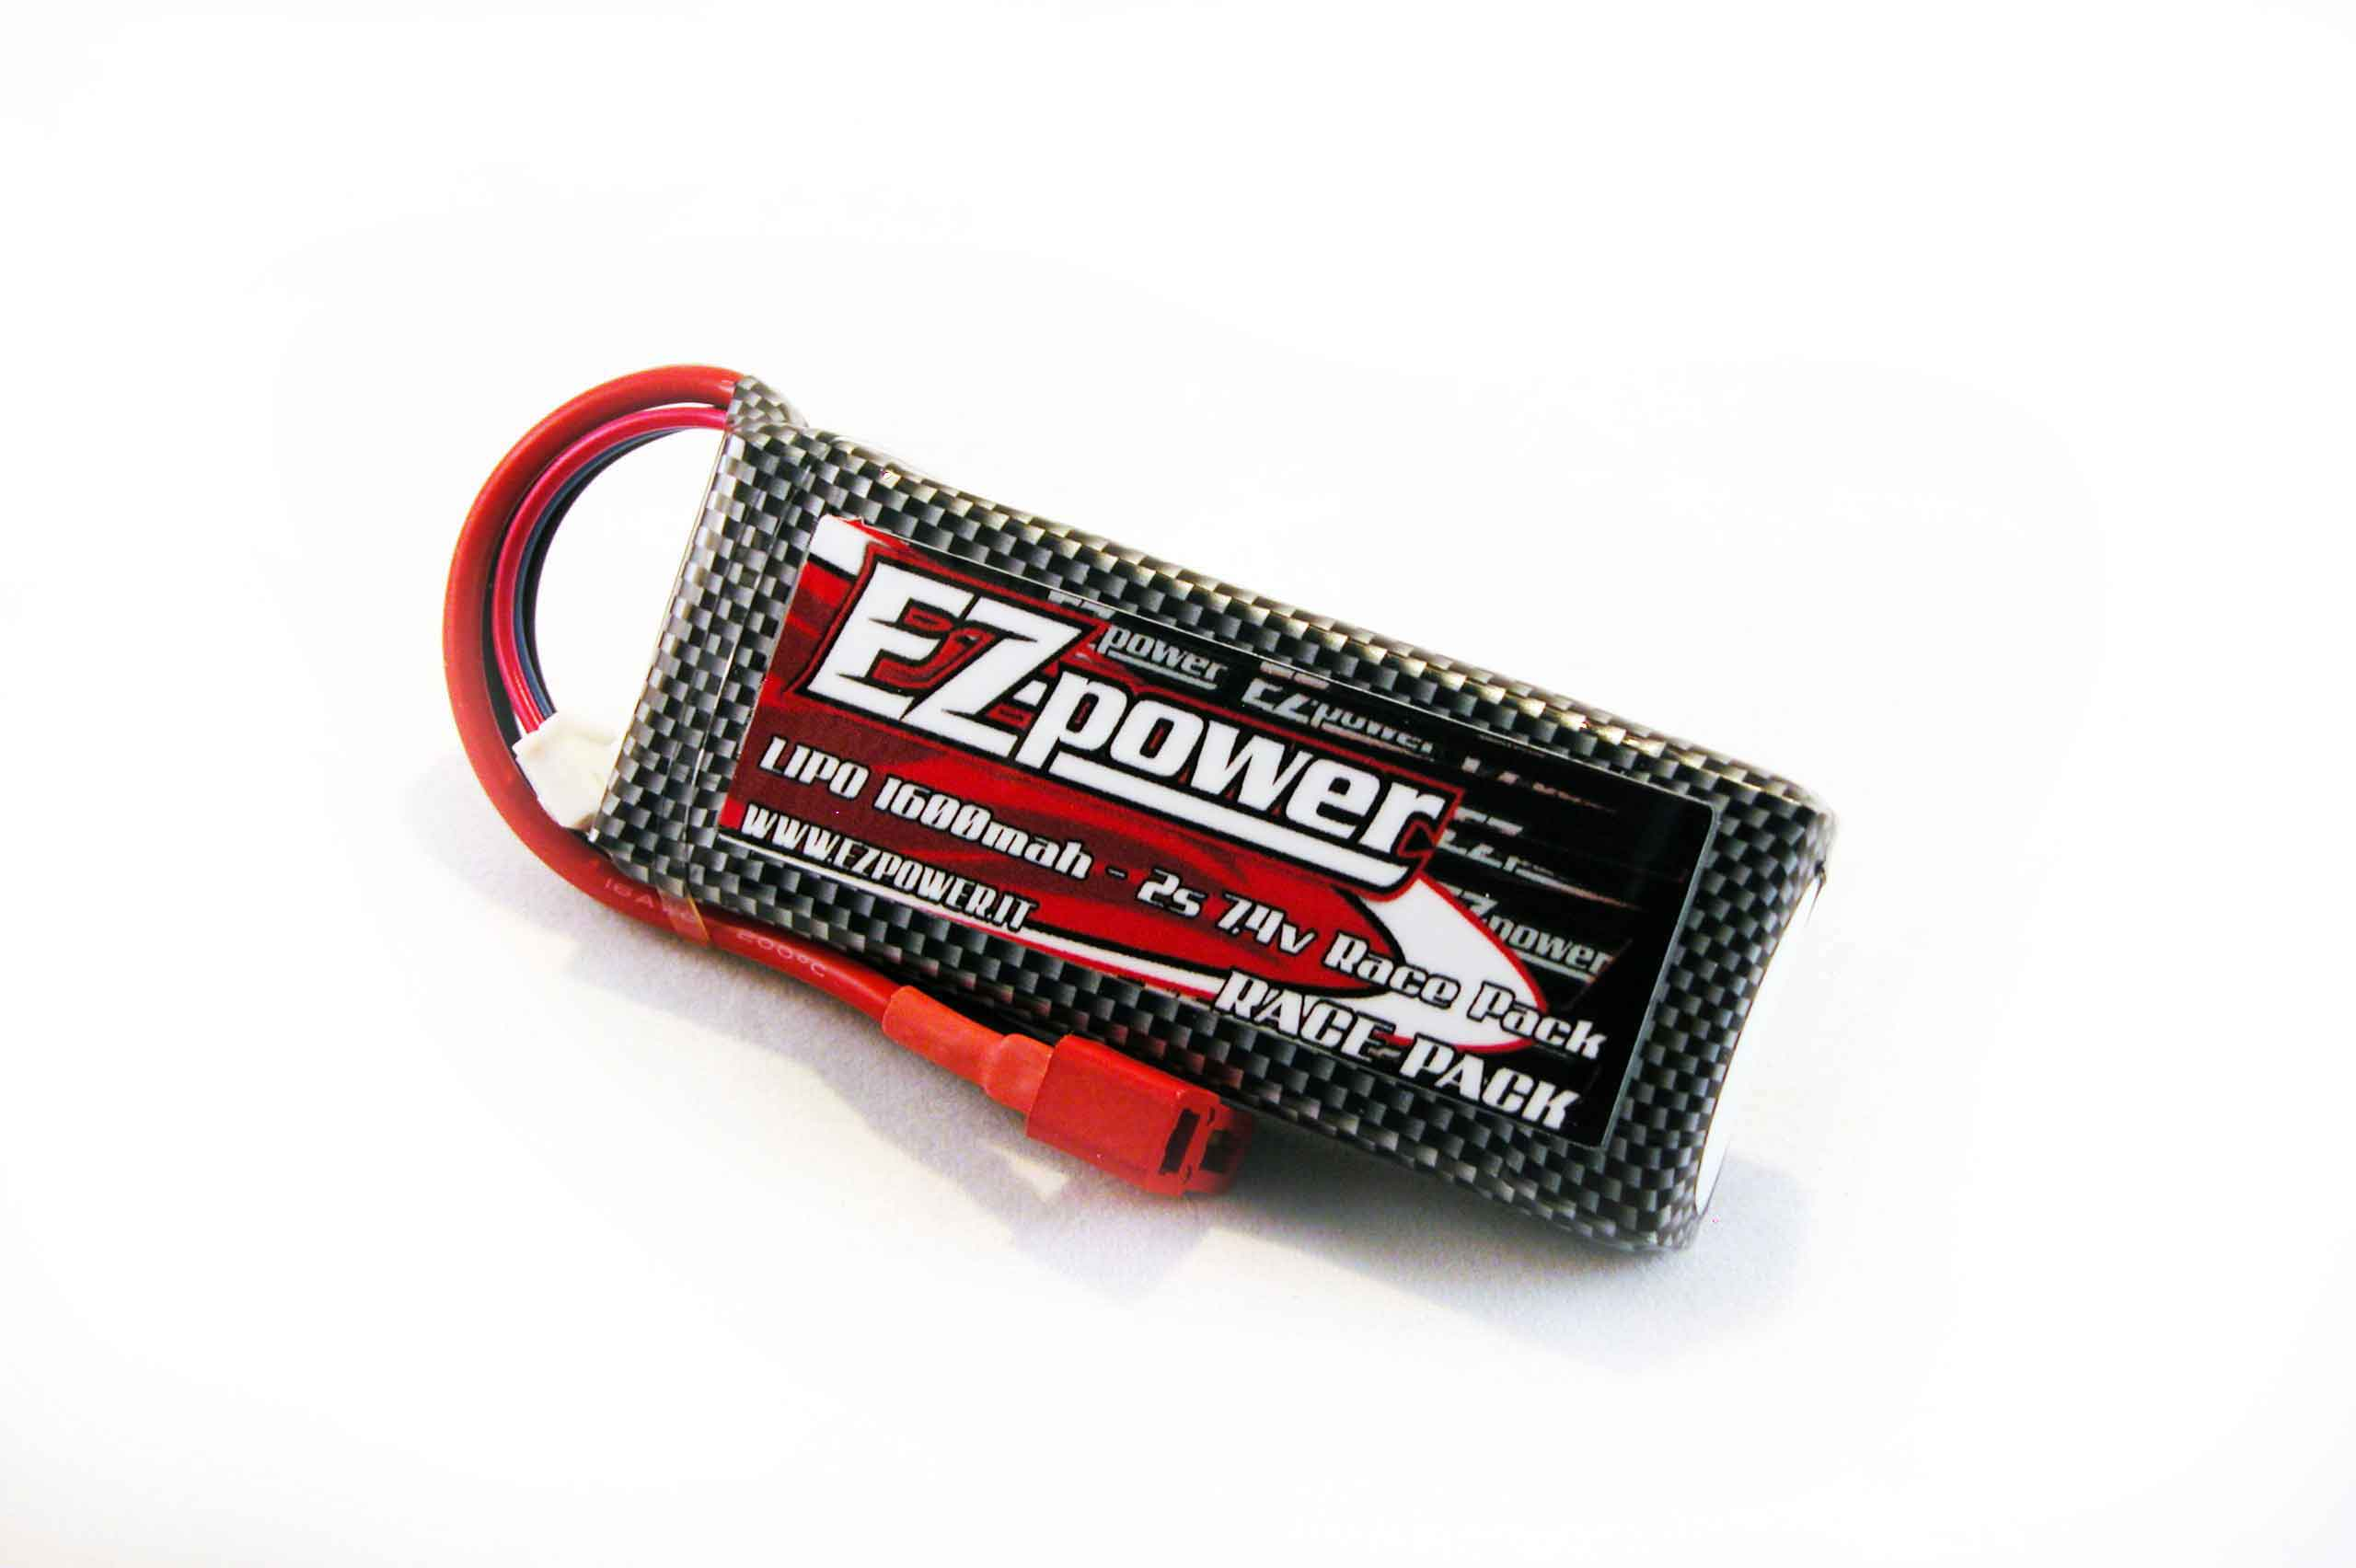 EZ-power BATTERIA LIPO 7,4V 1600MAH - 25C